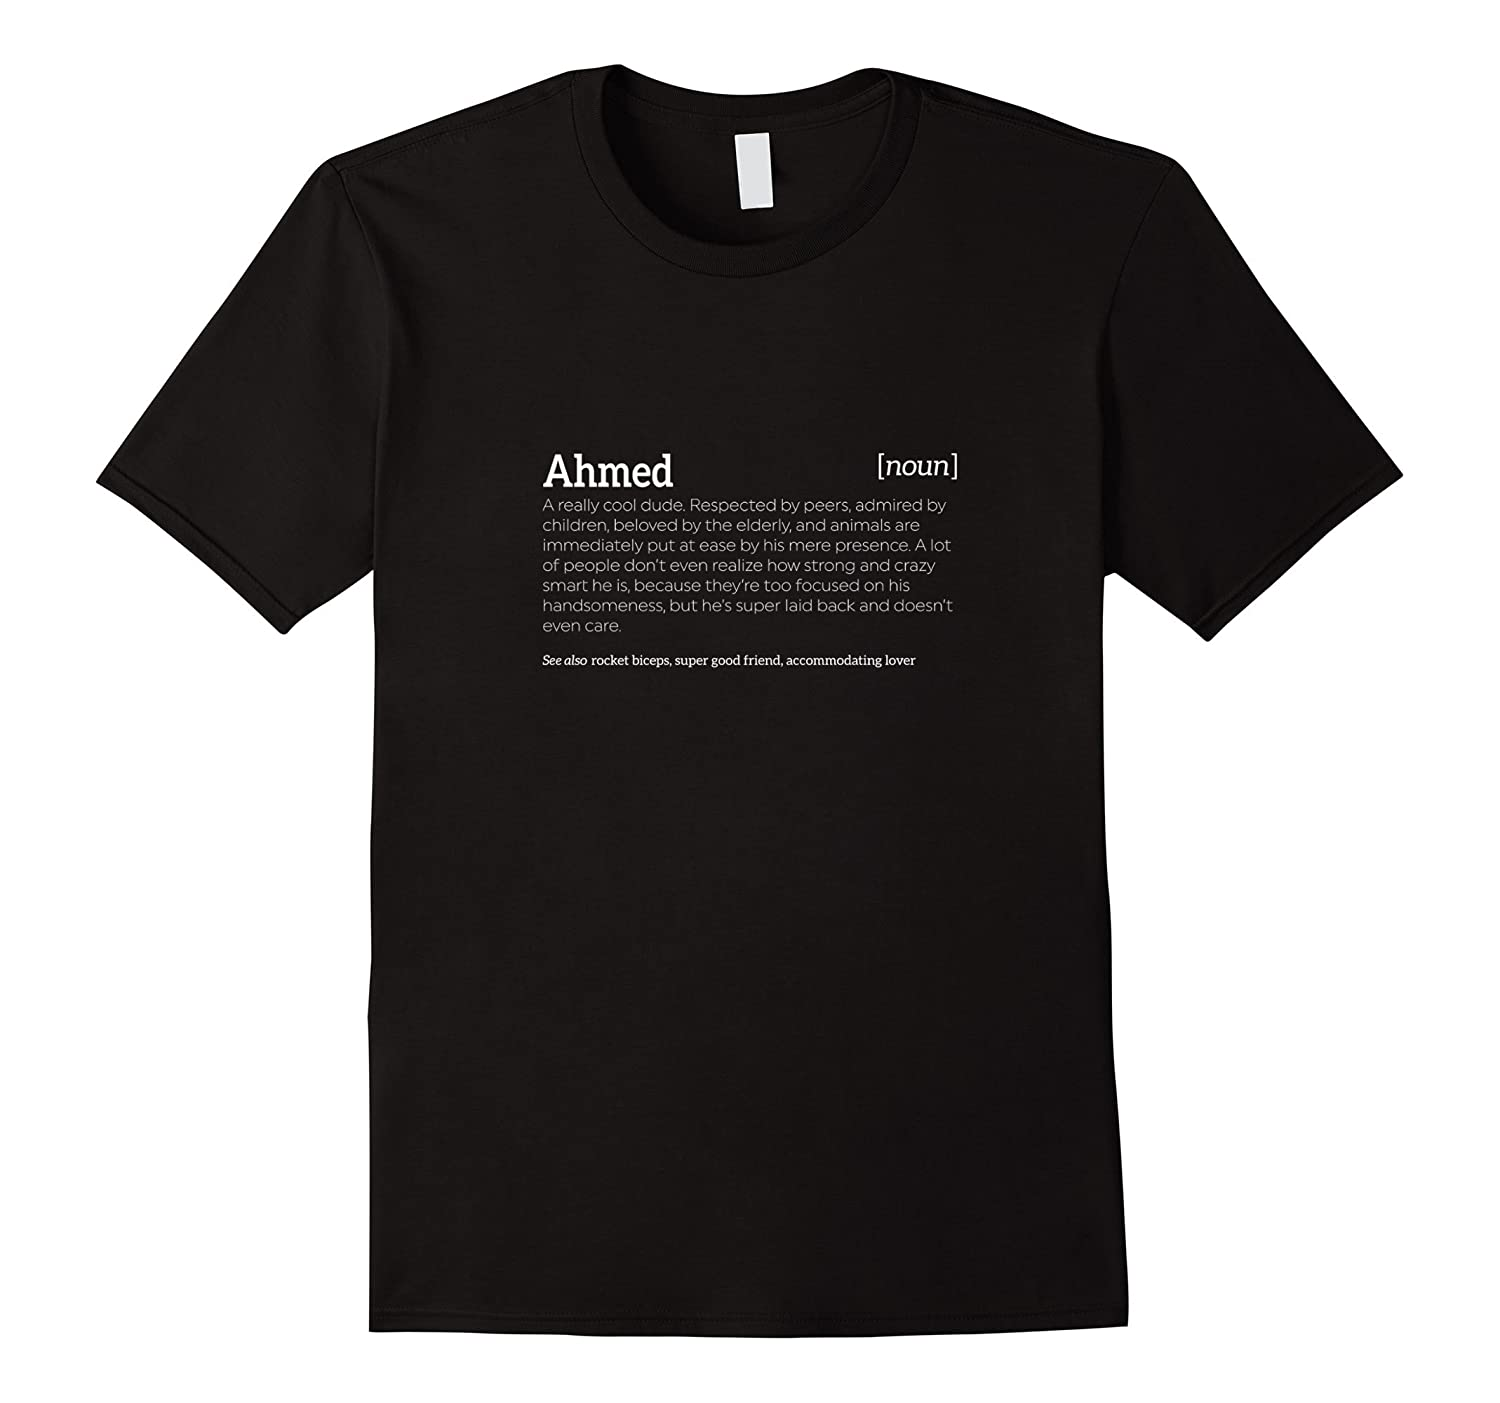 Ahmed is a Cool Dude | Funny Compliment T-shirt-FL